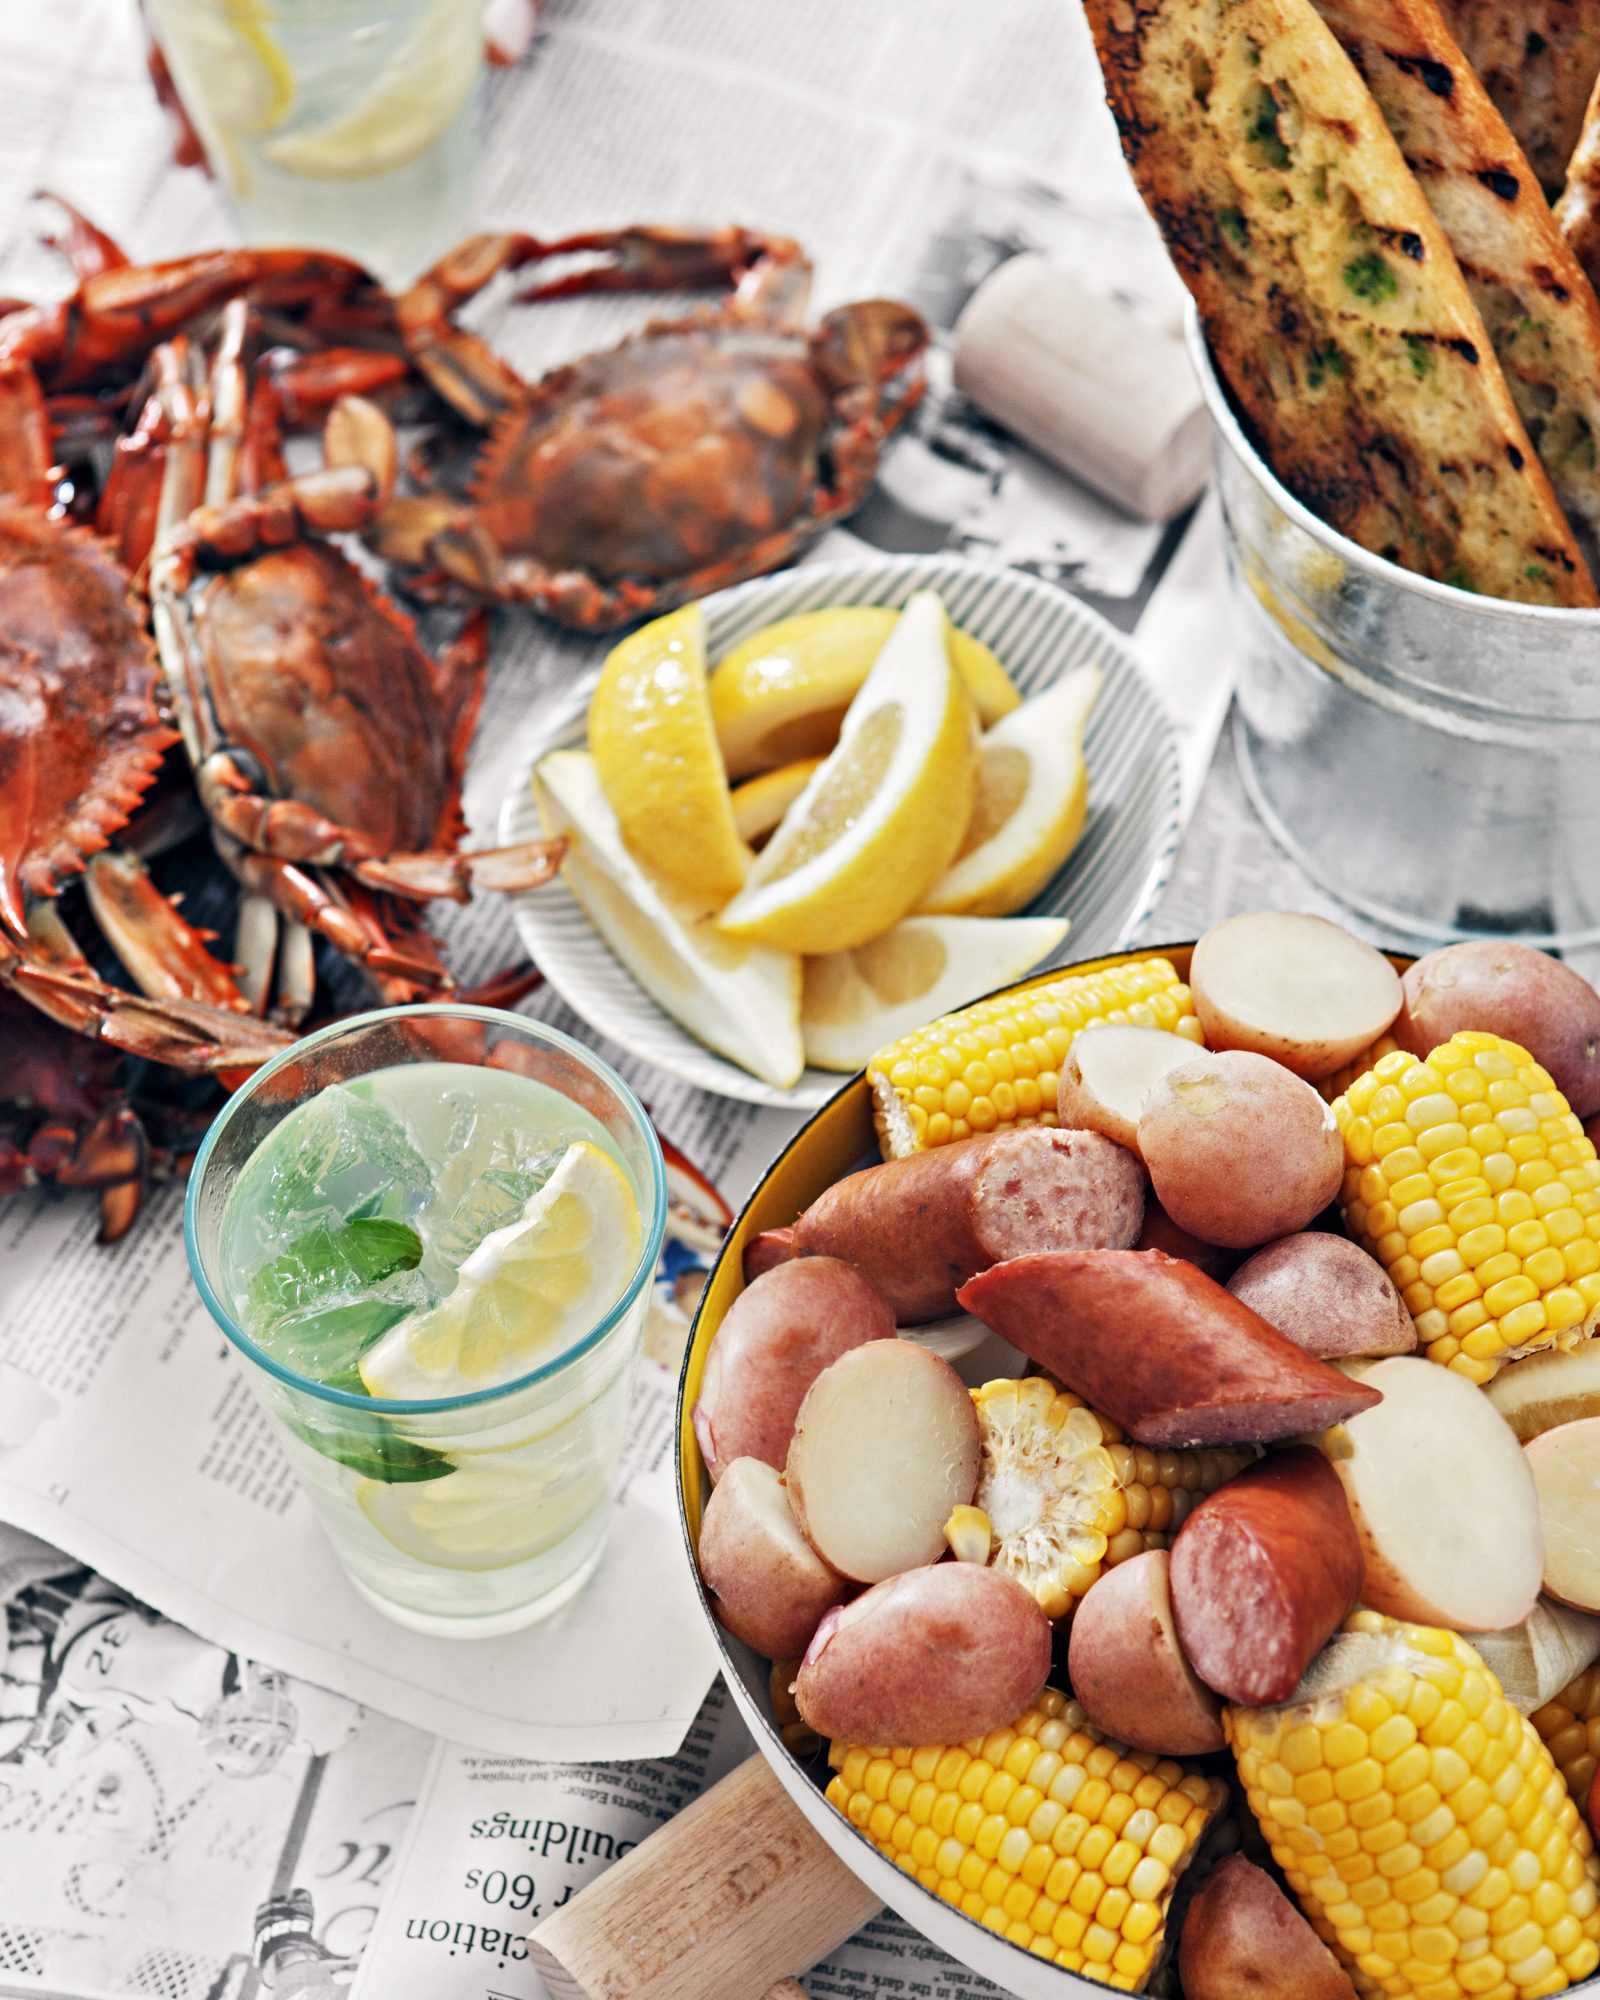 Maryland Blue Crab Boil with Beer & Old Bay